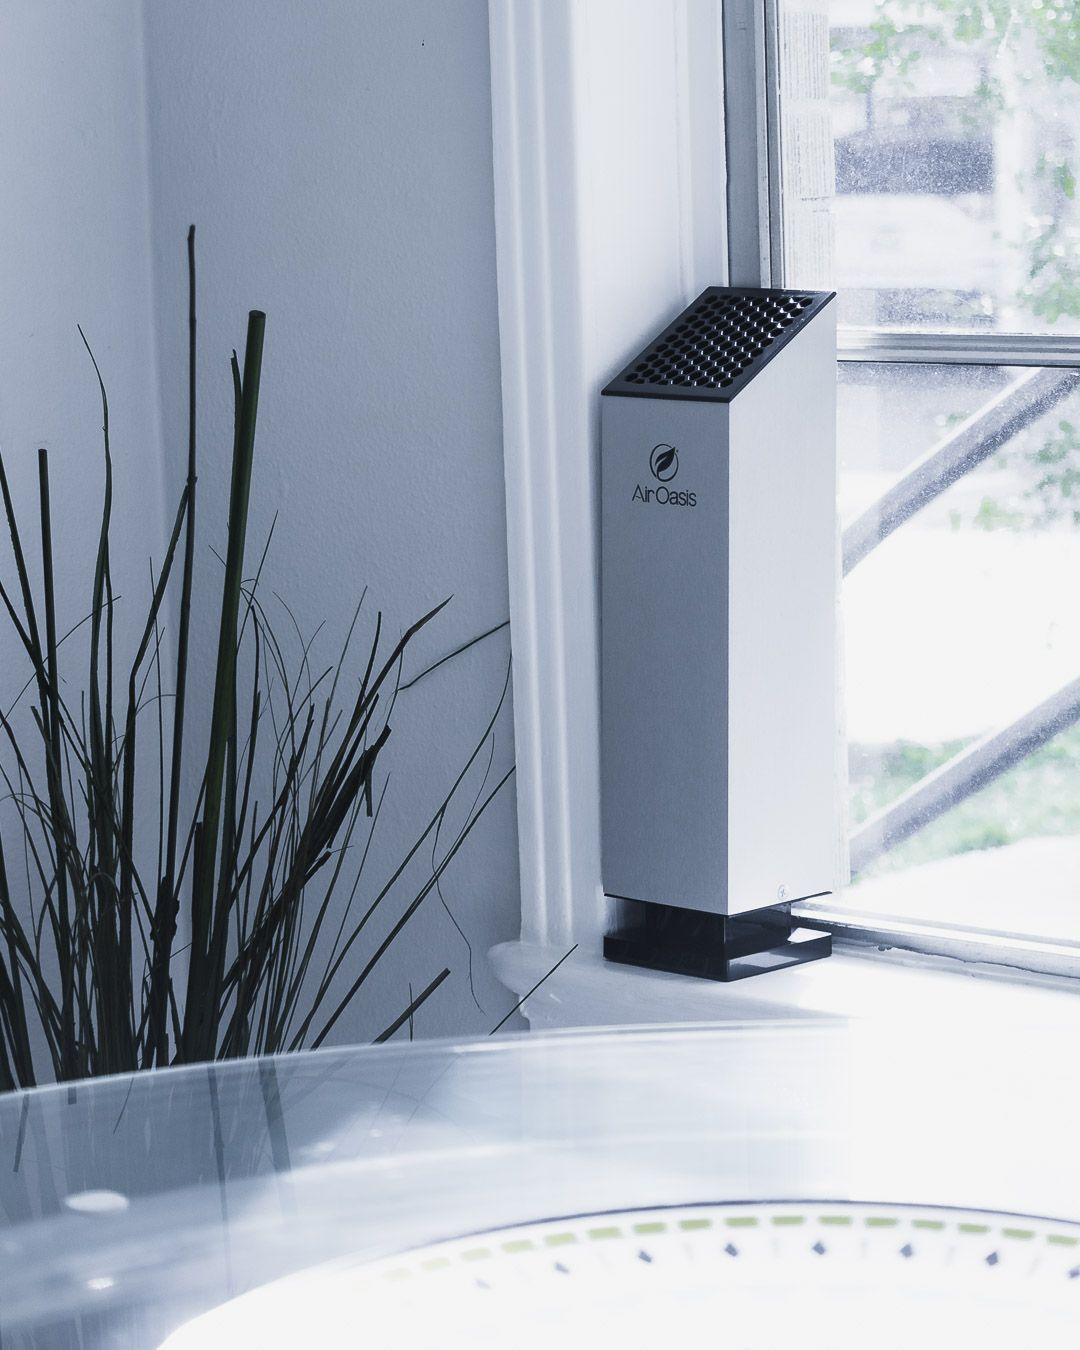 Breathe absolutely clean, fresh, and germfree air Get